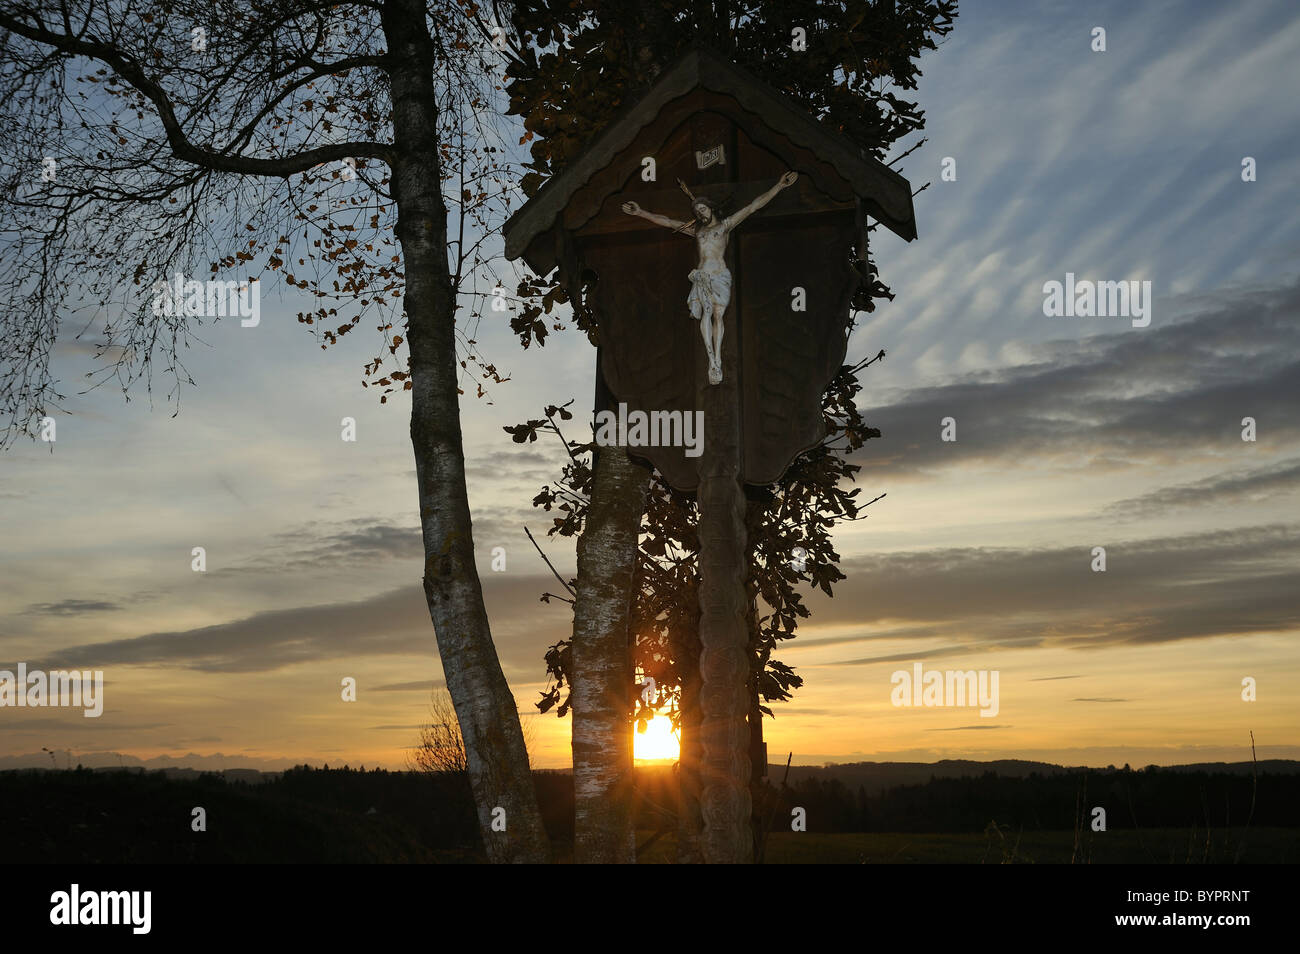 Cross Beams Stock Photos Amp Cross Beams Stock Images Alamy